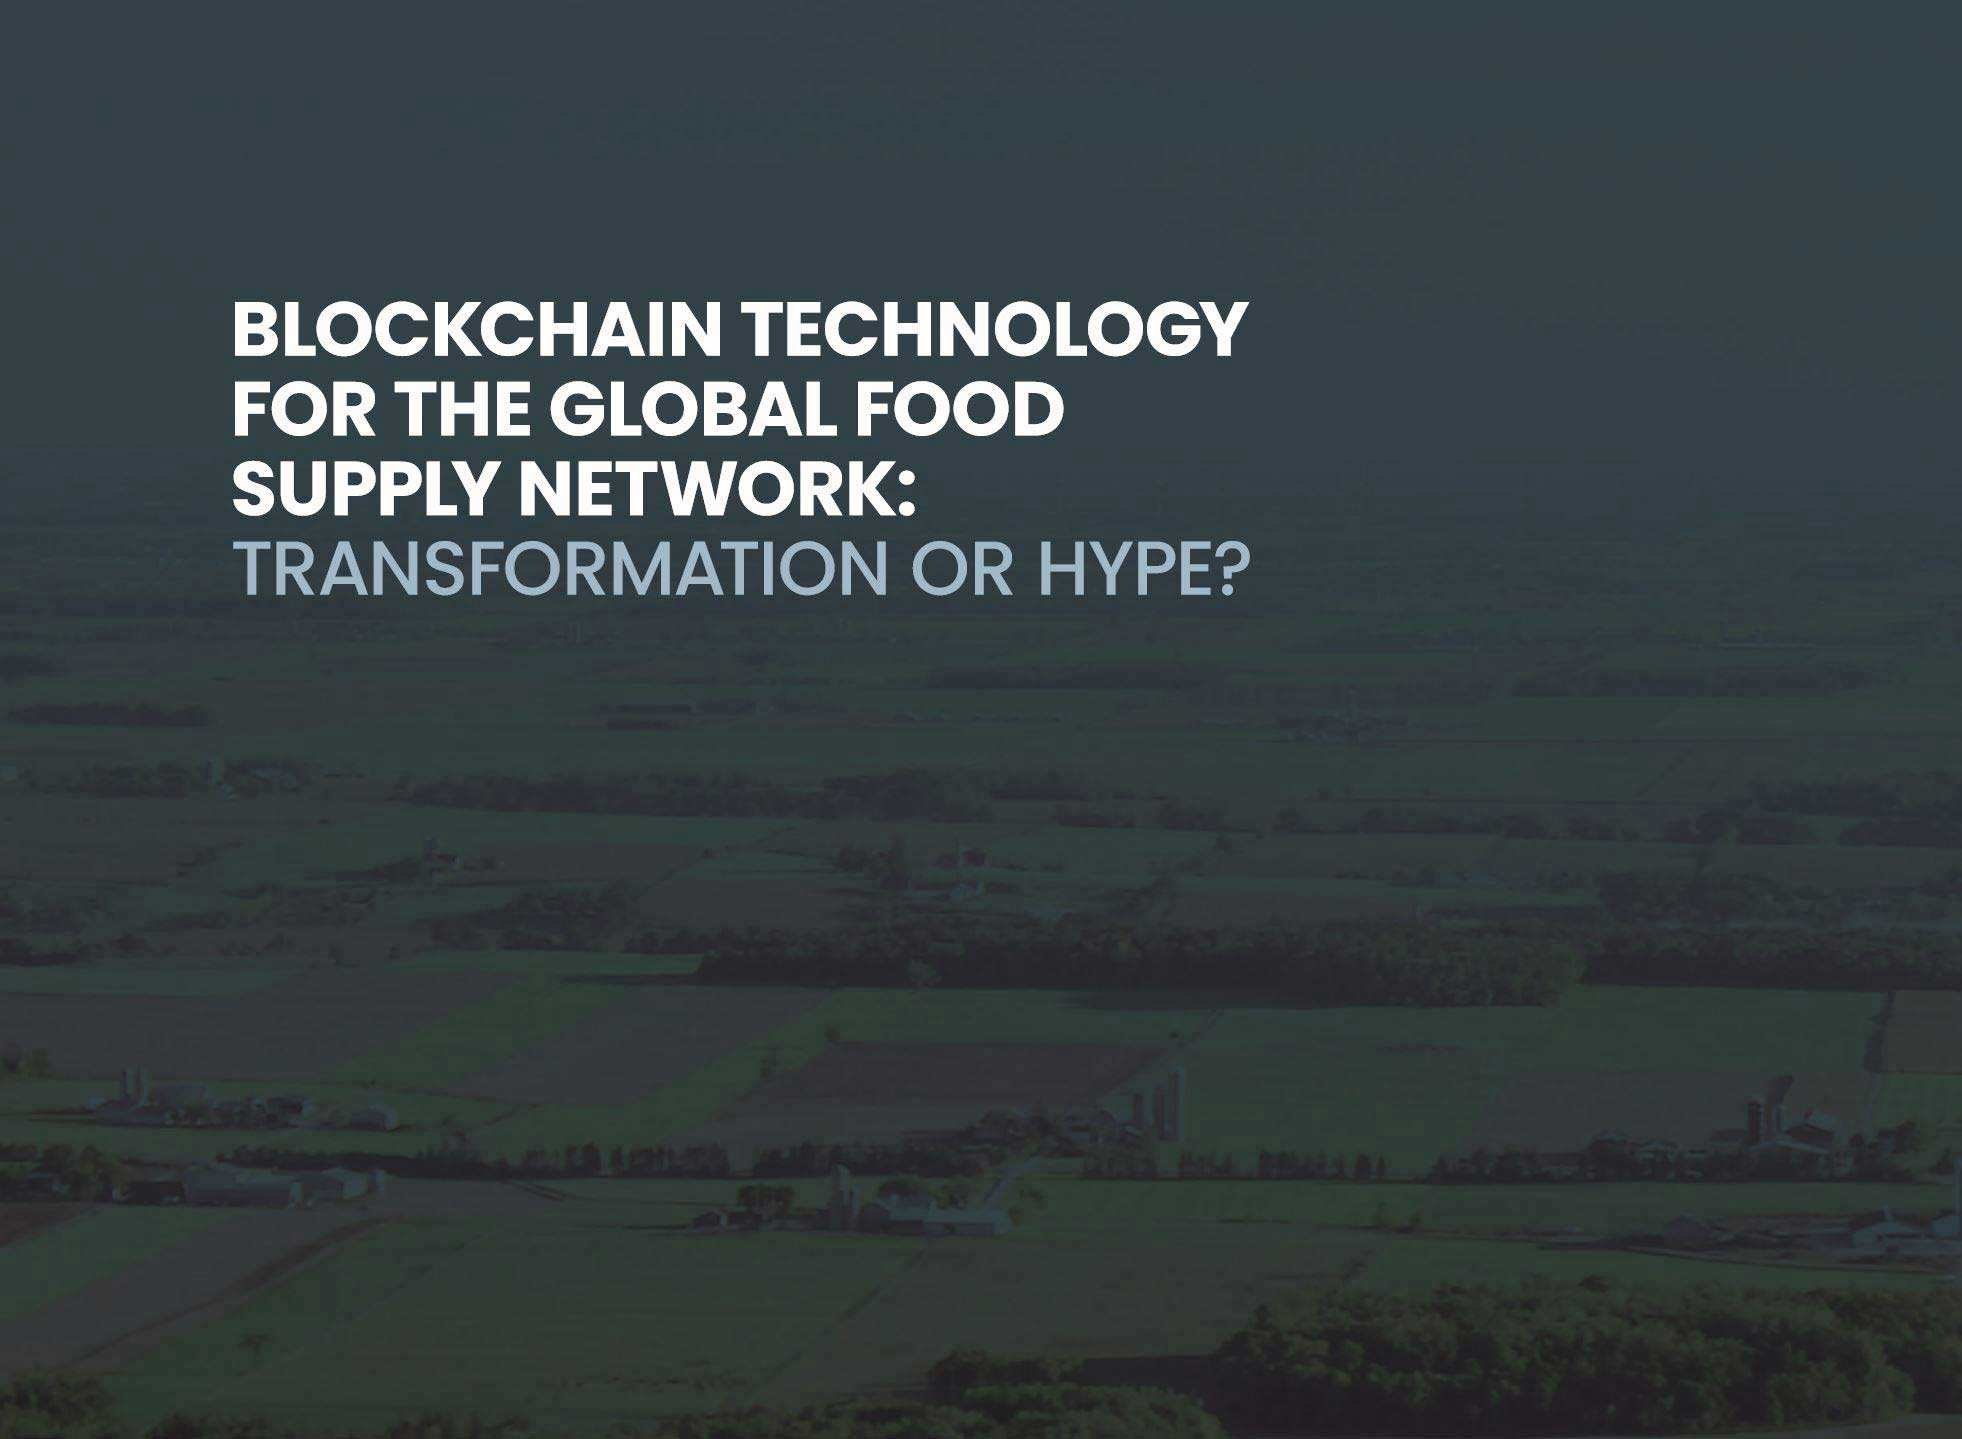 New white paper: Blockchain Technology for the Global Food Supply Network